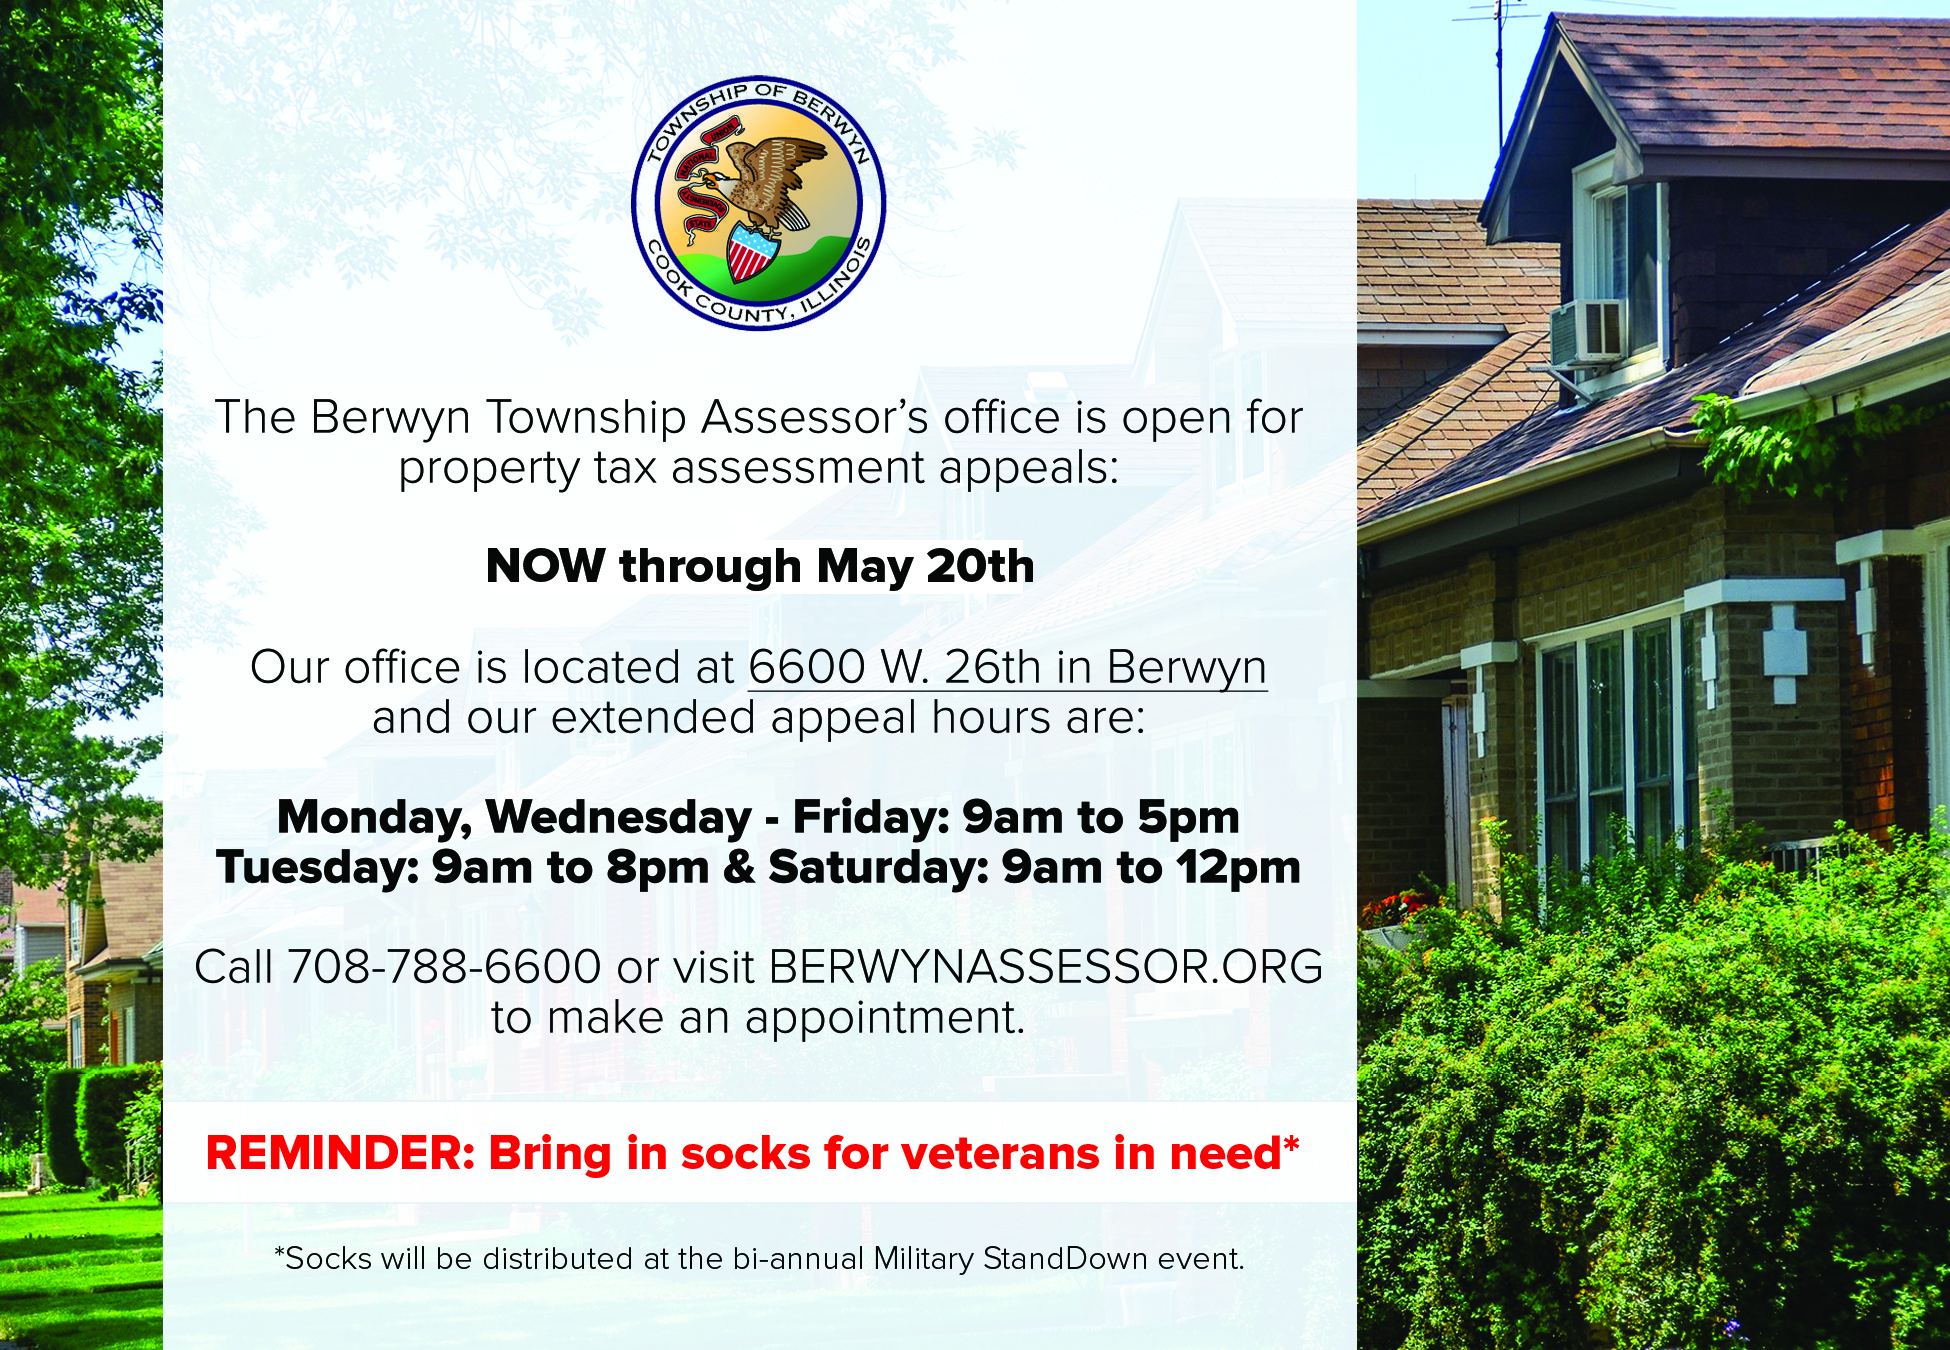 Berwyn_Tax_Appeal_Flyer_newdates.jpg